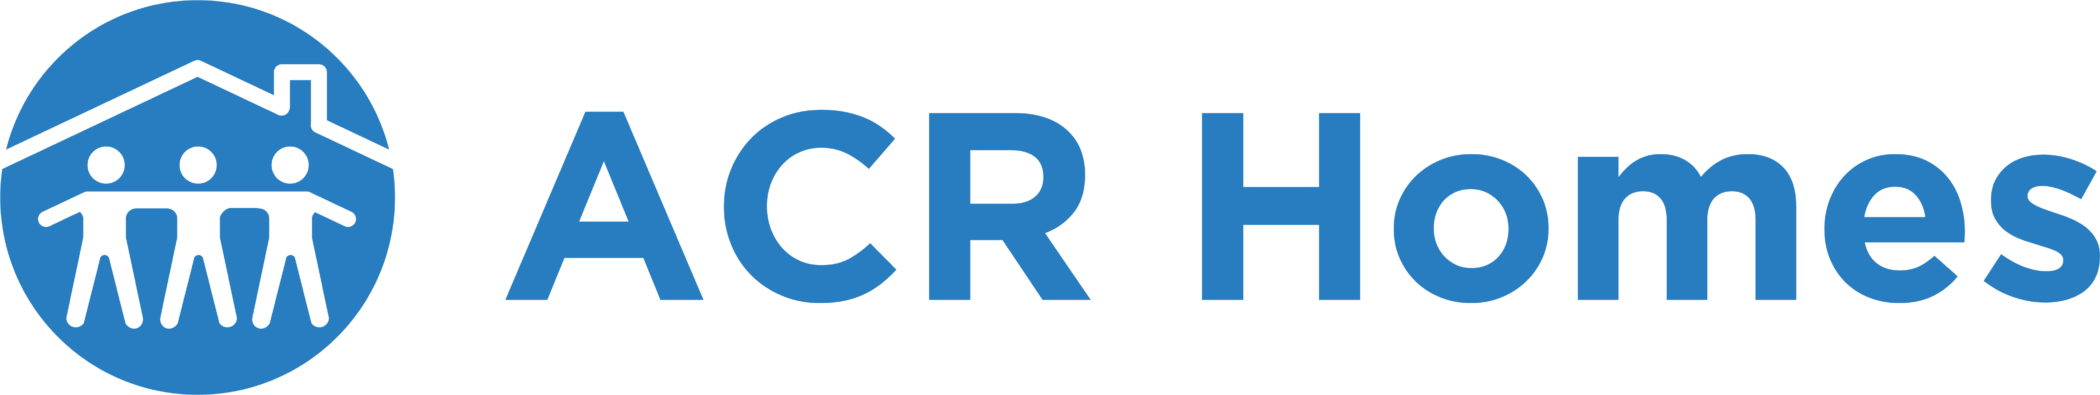 ACR Homes Company Logo